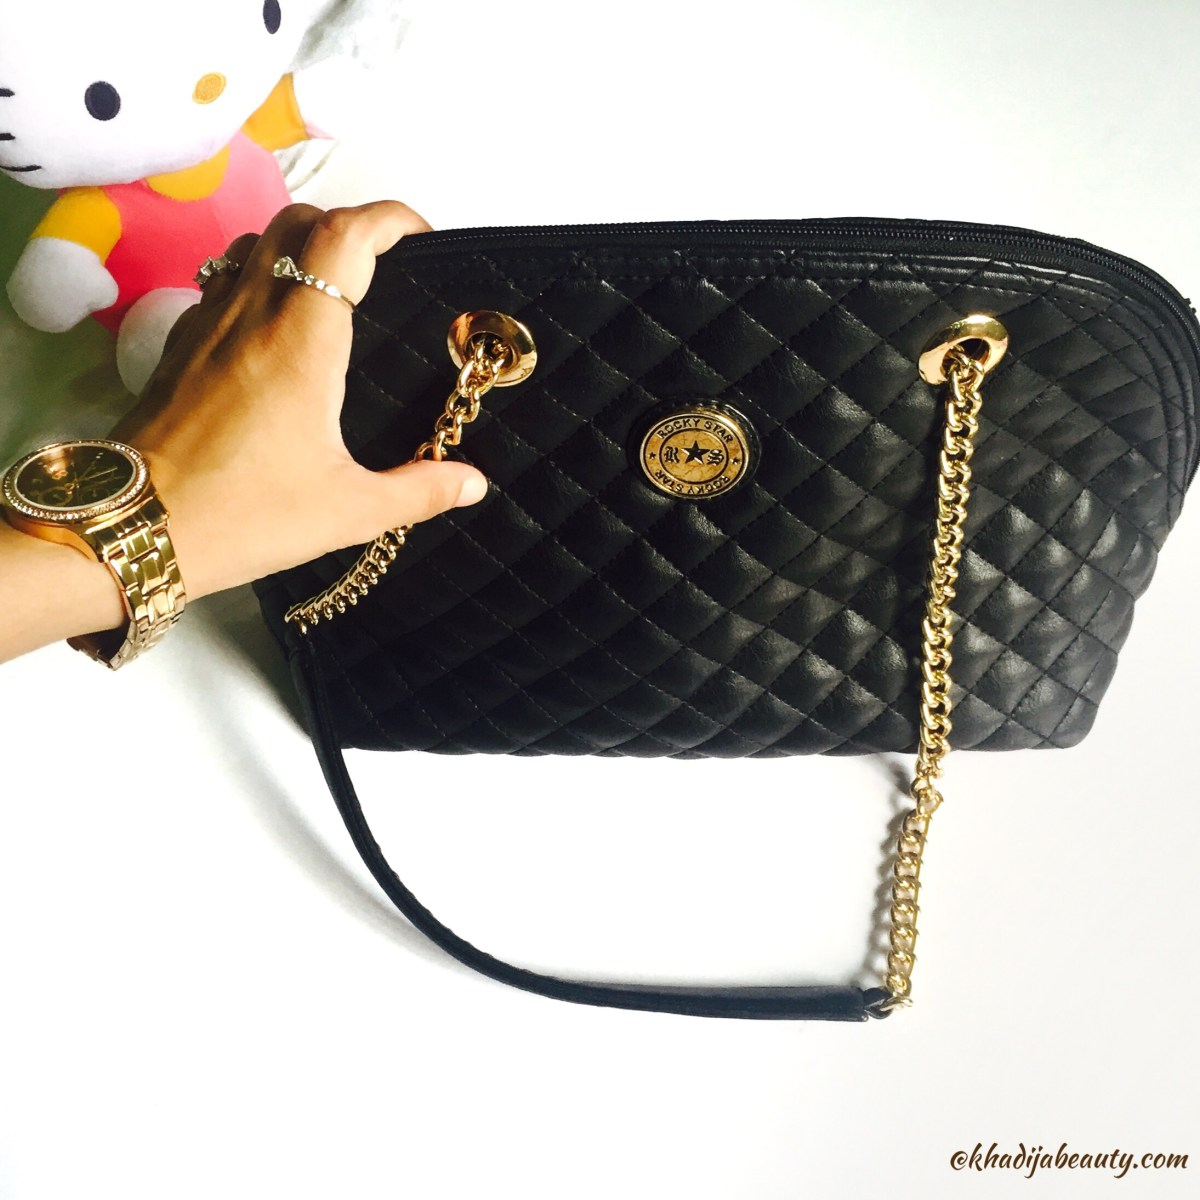 Rocky Star Handbag Review| Chic And Classy Black Handbag